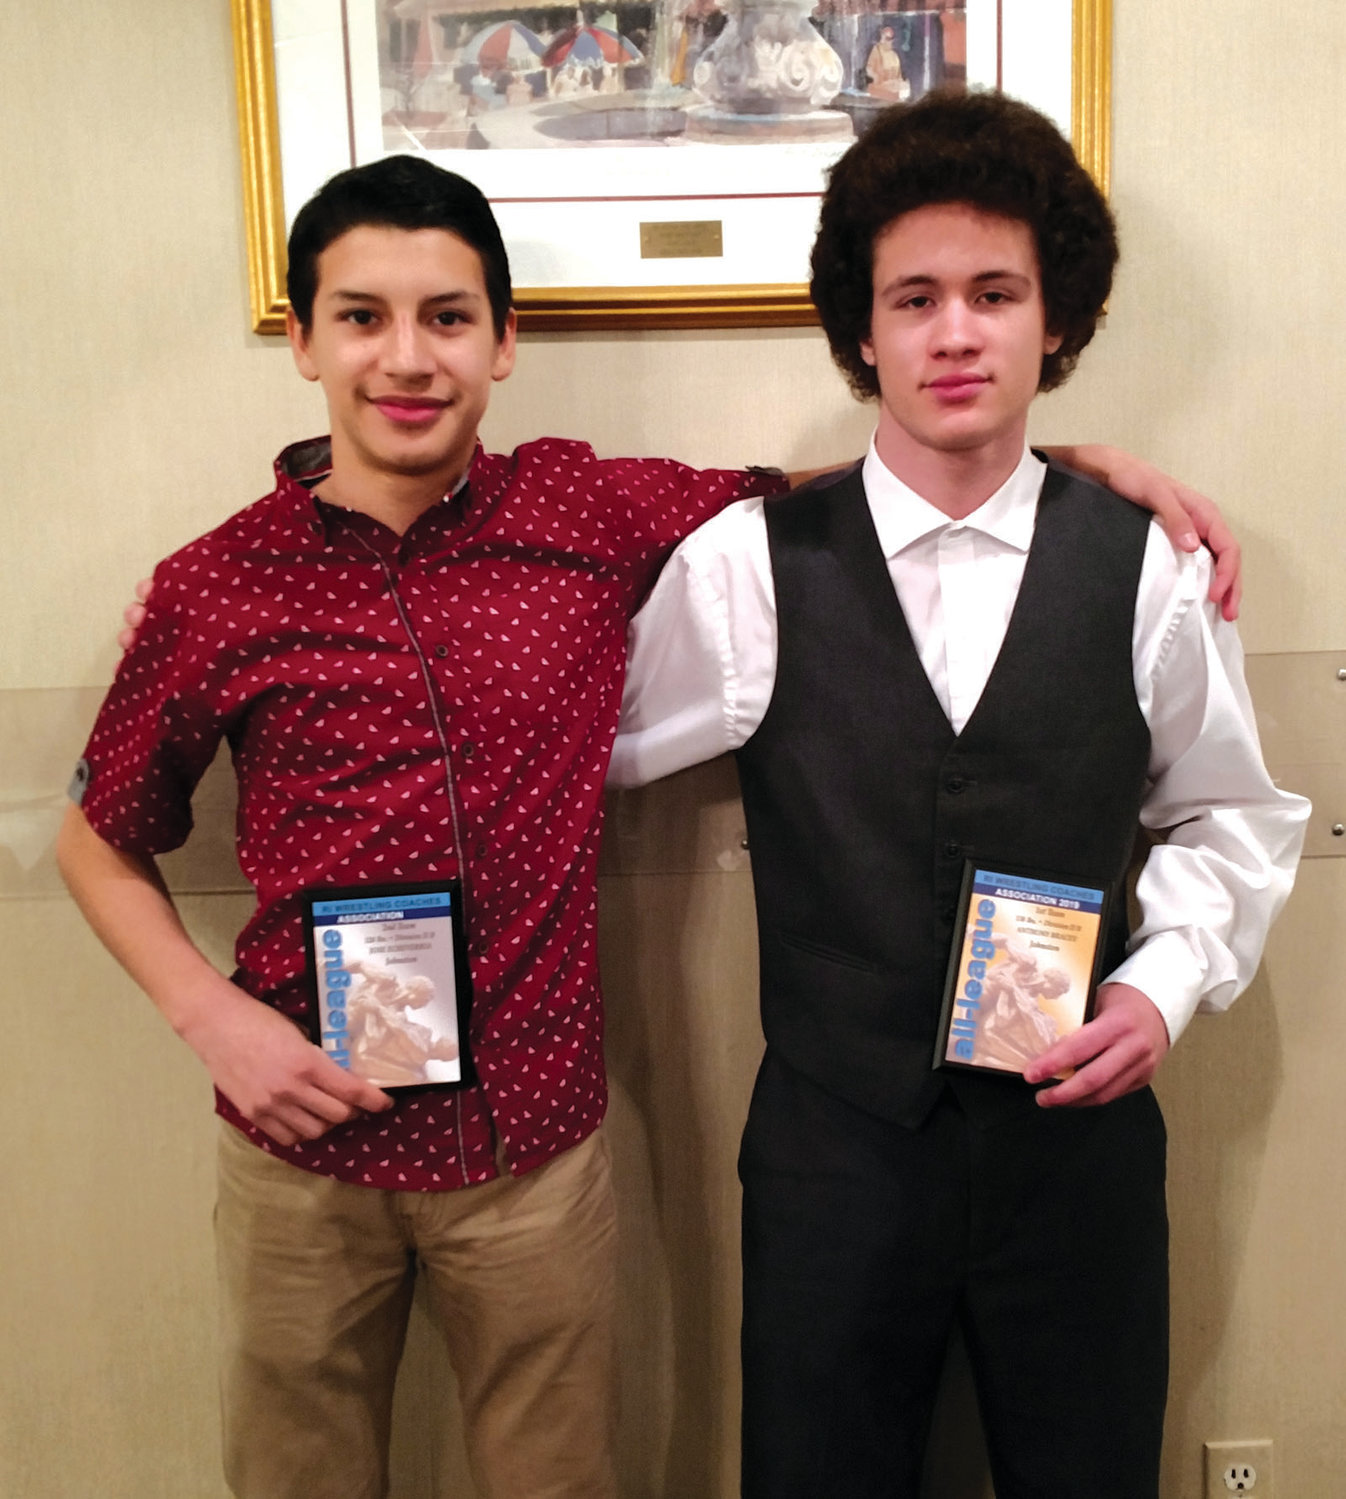 PROUD PANTHERS: Sophomore Joe Echeverria (left) and freshman Antonio Bracey recently received All-Division honors during the RI Wrestling Coaches Association Awards Dinner at Wright's Farm in Burrillville.